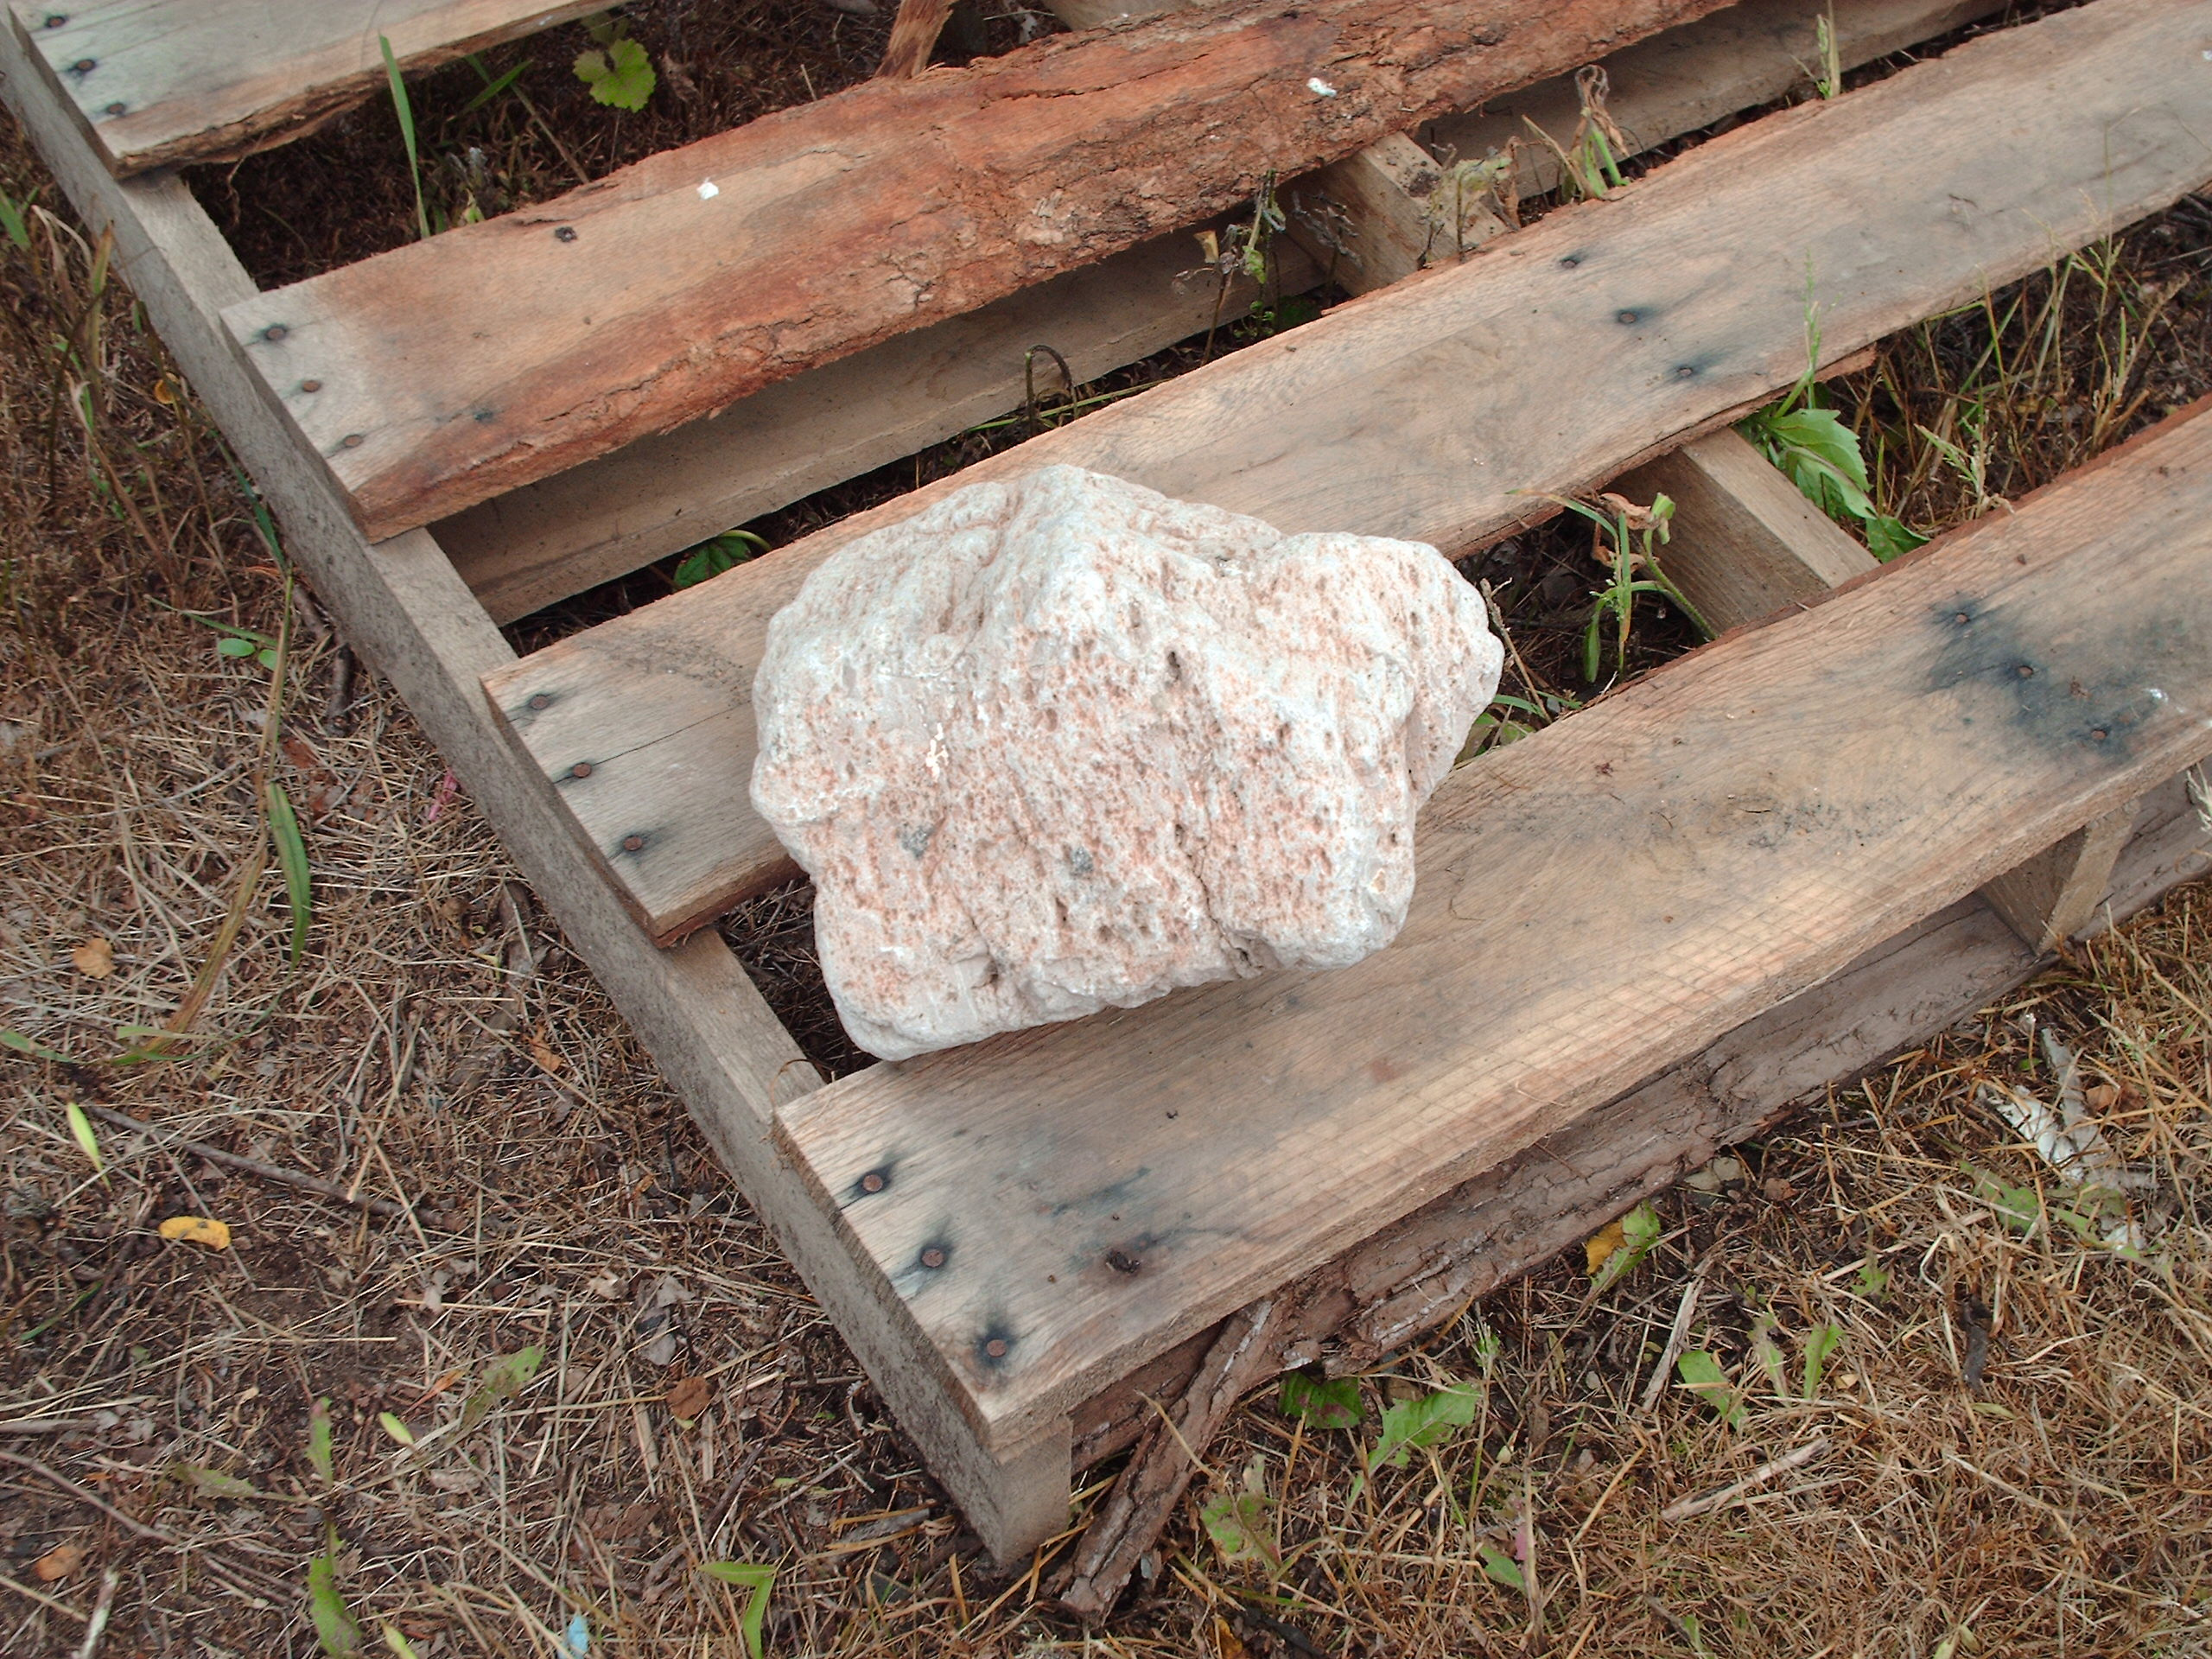 This rock is only $20 at our Fountainville Pa farm. We can UPS it if necessary.